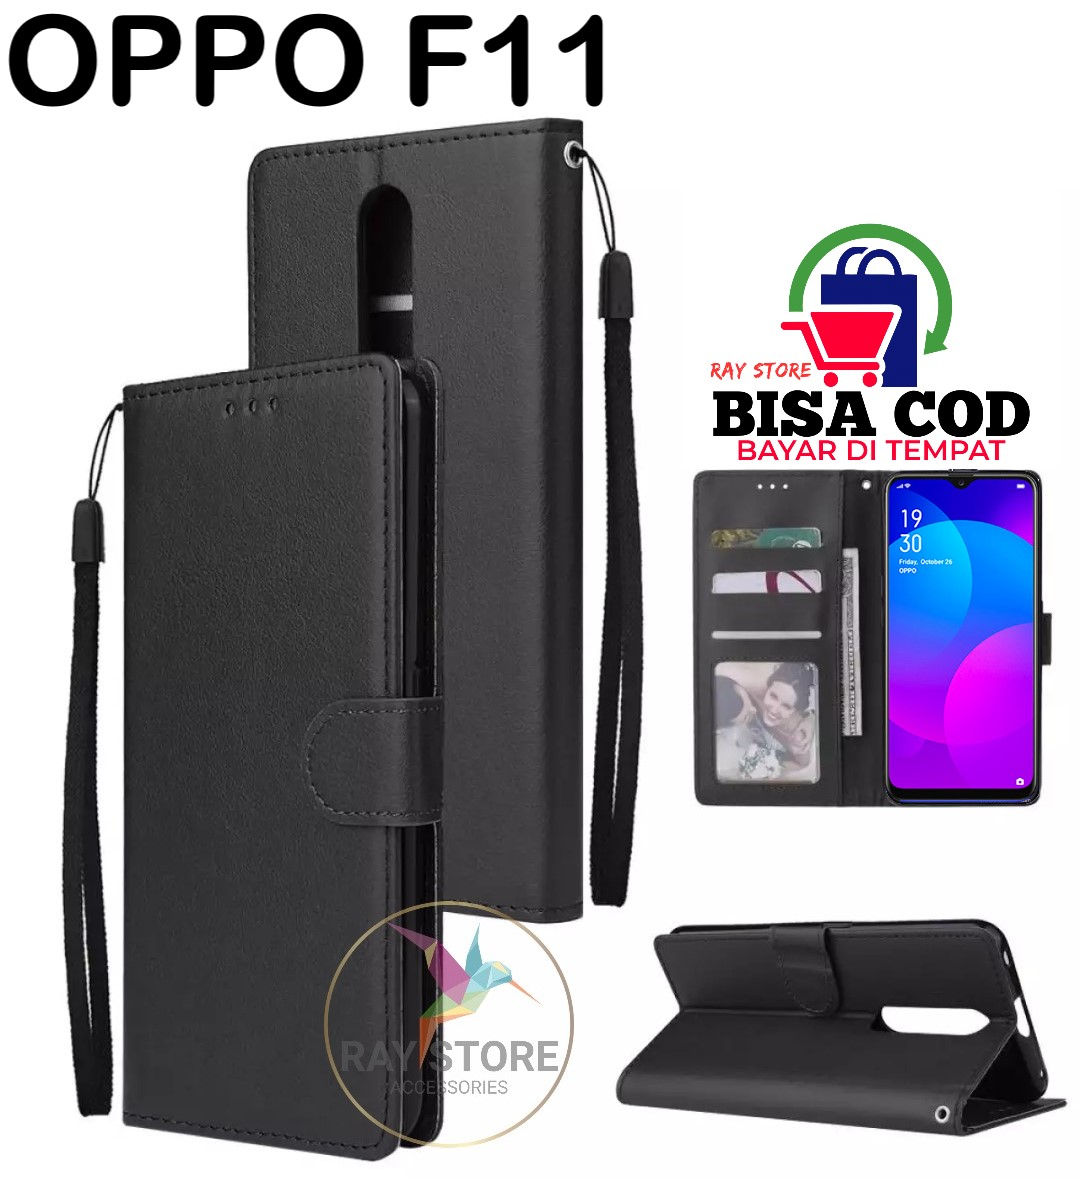 OPPO F11 LEATHER CASE PREMIUM-FLIP WALLET CASE KULIT UNTUK OPPO F11 - CASING DOMPET-FLIP COVER LEATHER-SARUNG BUKU HP